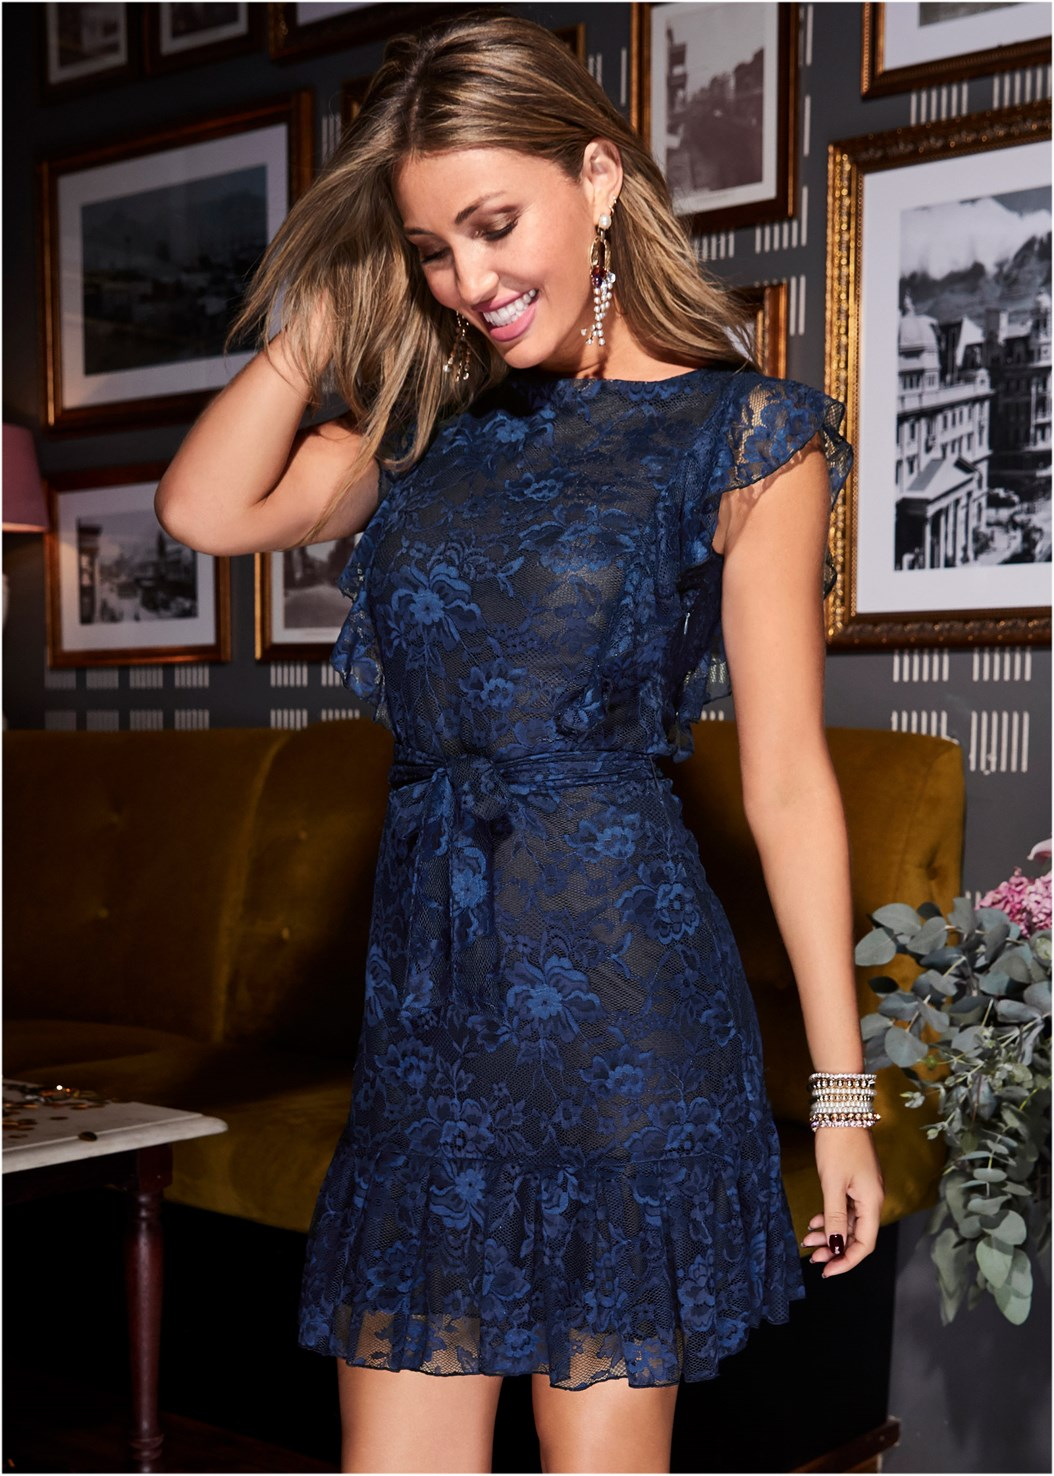 All Over Lace Dress